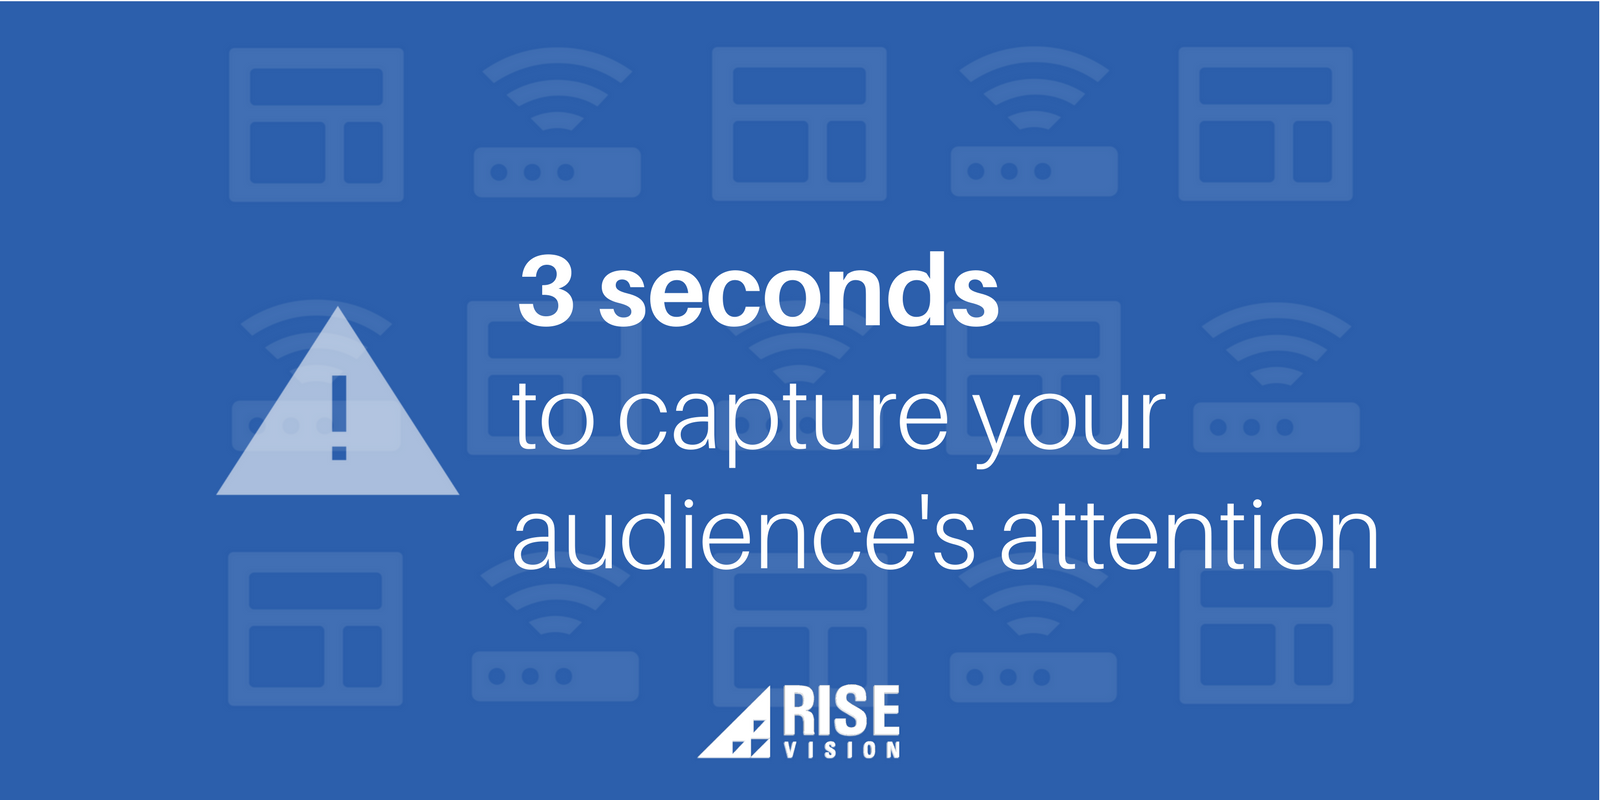 Rise Vision Digital Signage Content Attention Span.png